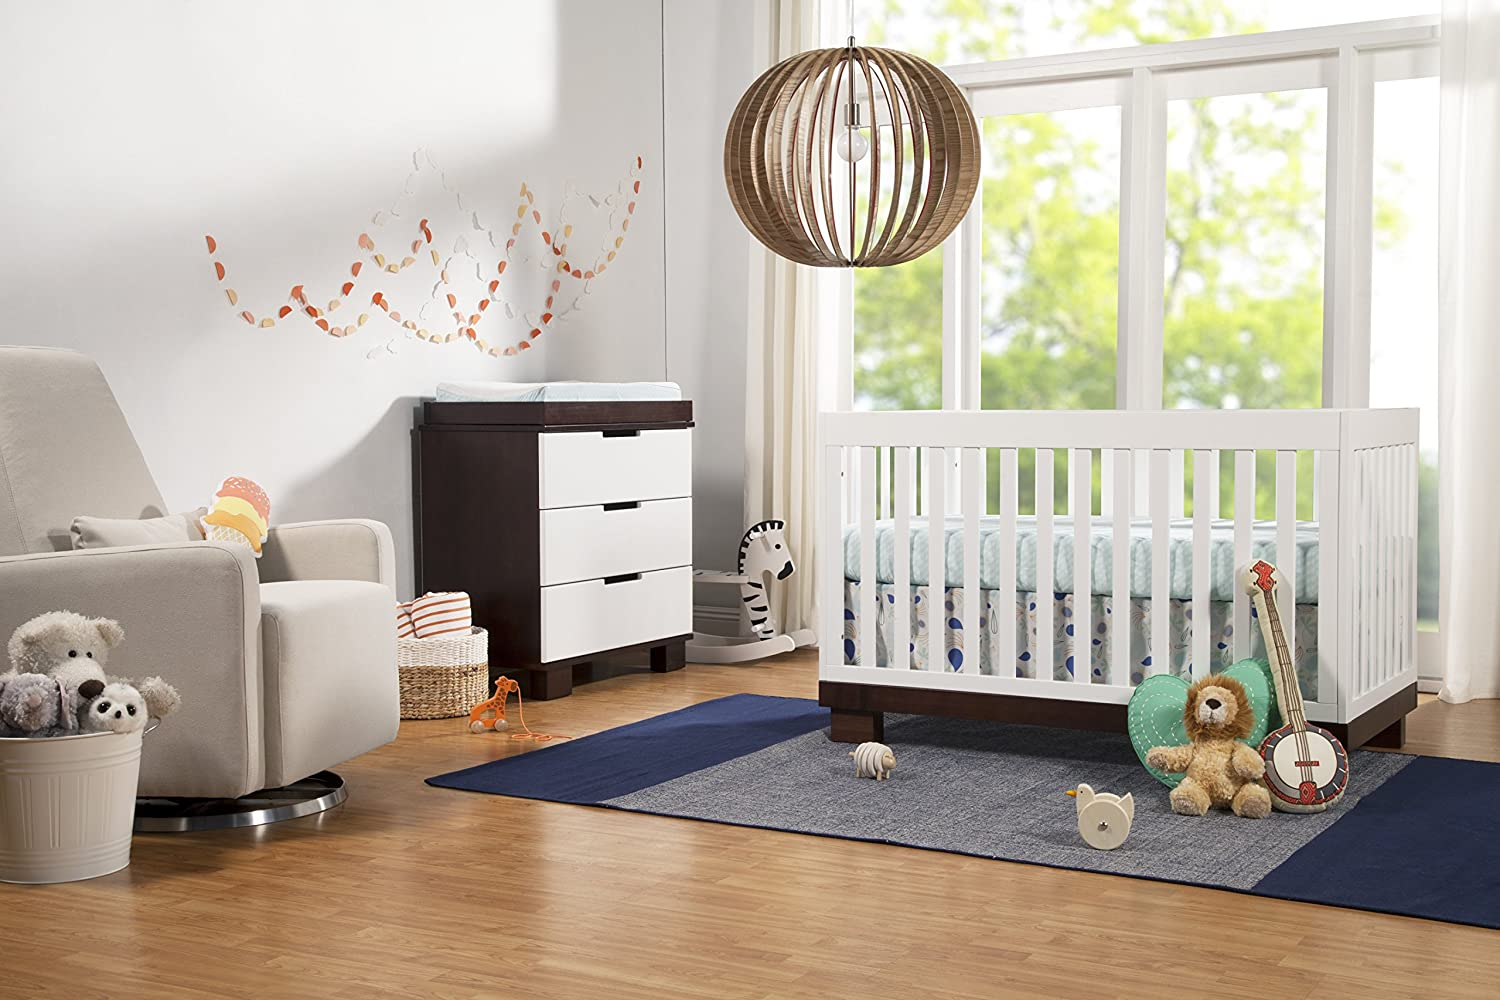 Amazon.com : Babyletto Modo 3 In 1 Convertible Crib With Toddler Bed  Conversion Kit, Espresso / White : Crib Skirt White : Baby